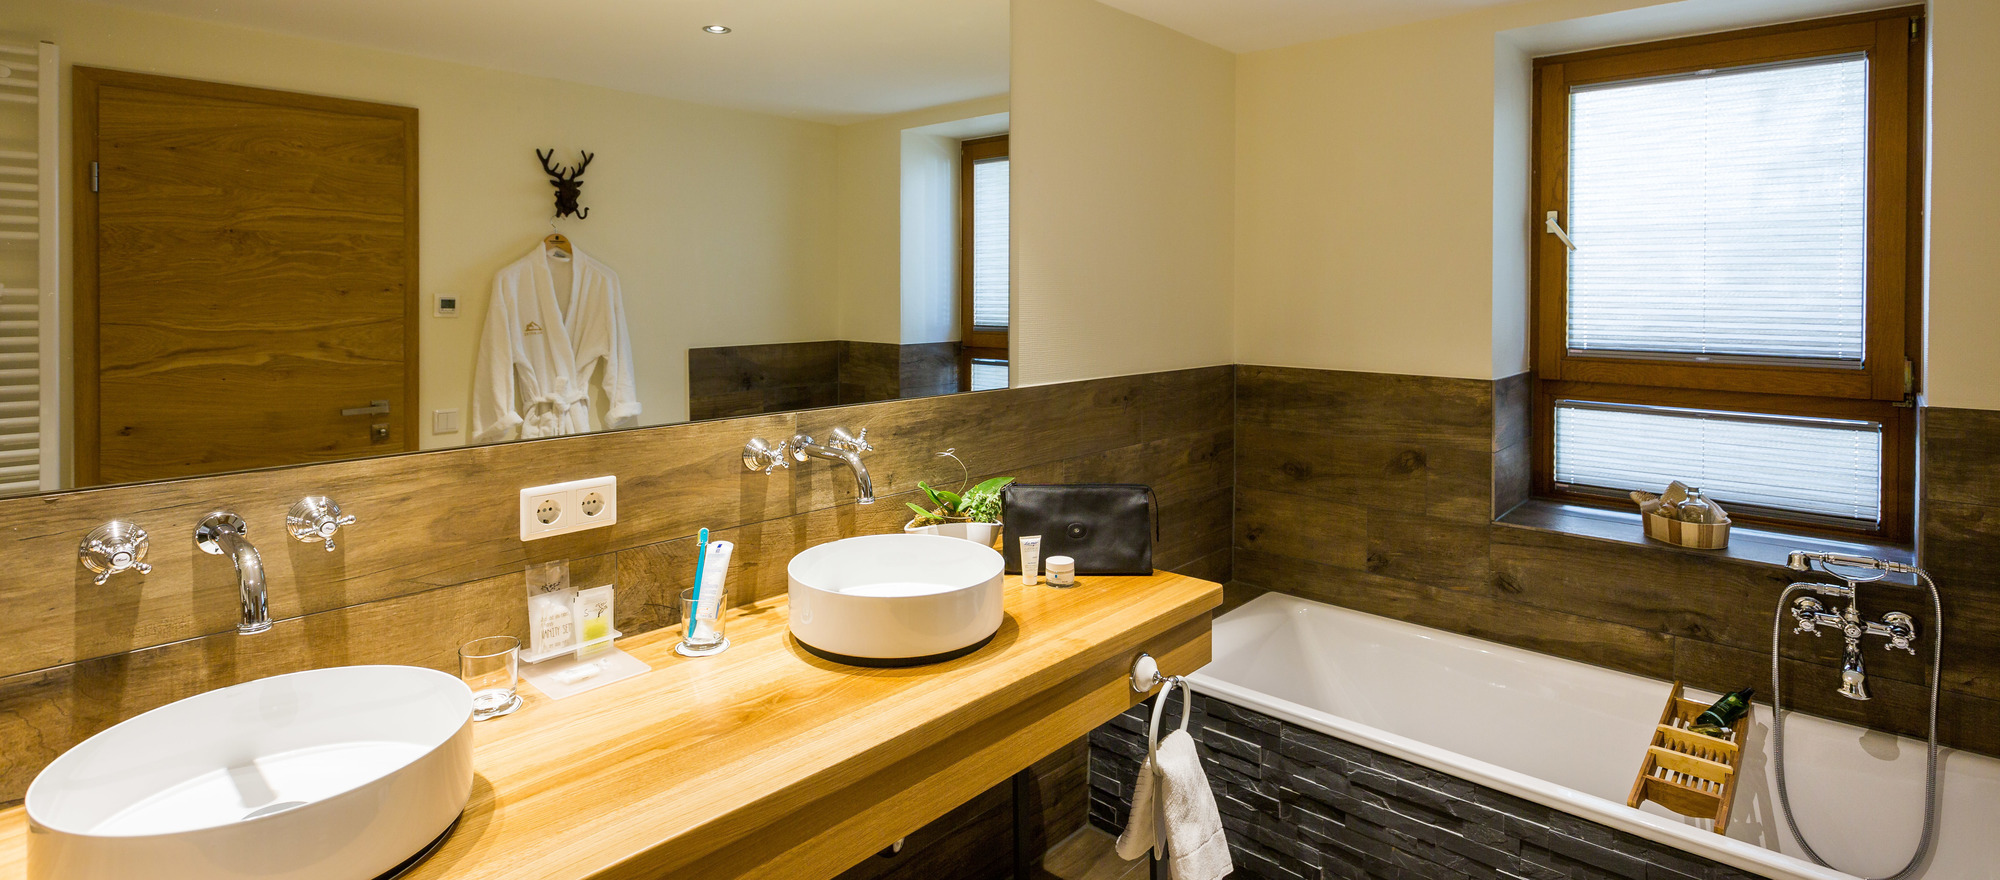 Bathroom of a suite in the 3-star hotel Ringhotel Germanenhof in Steinheim-Sandebeck